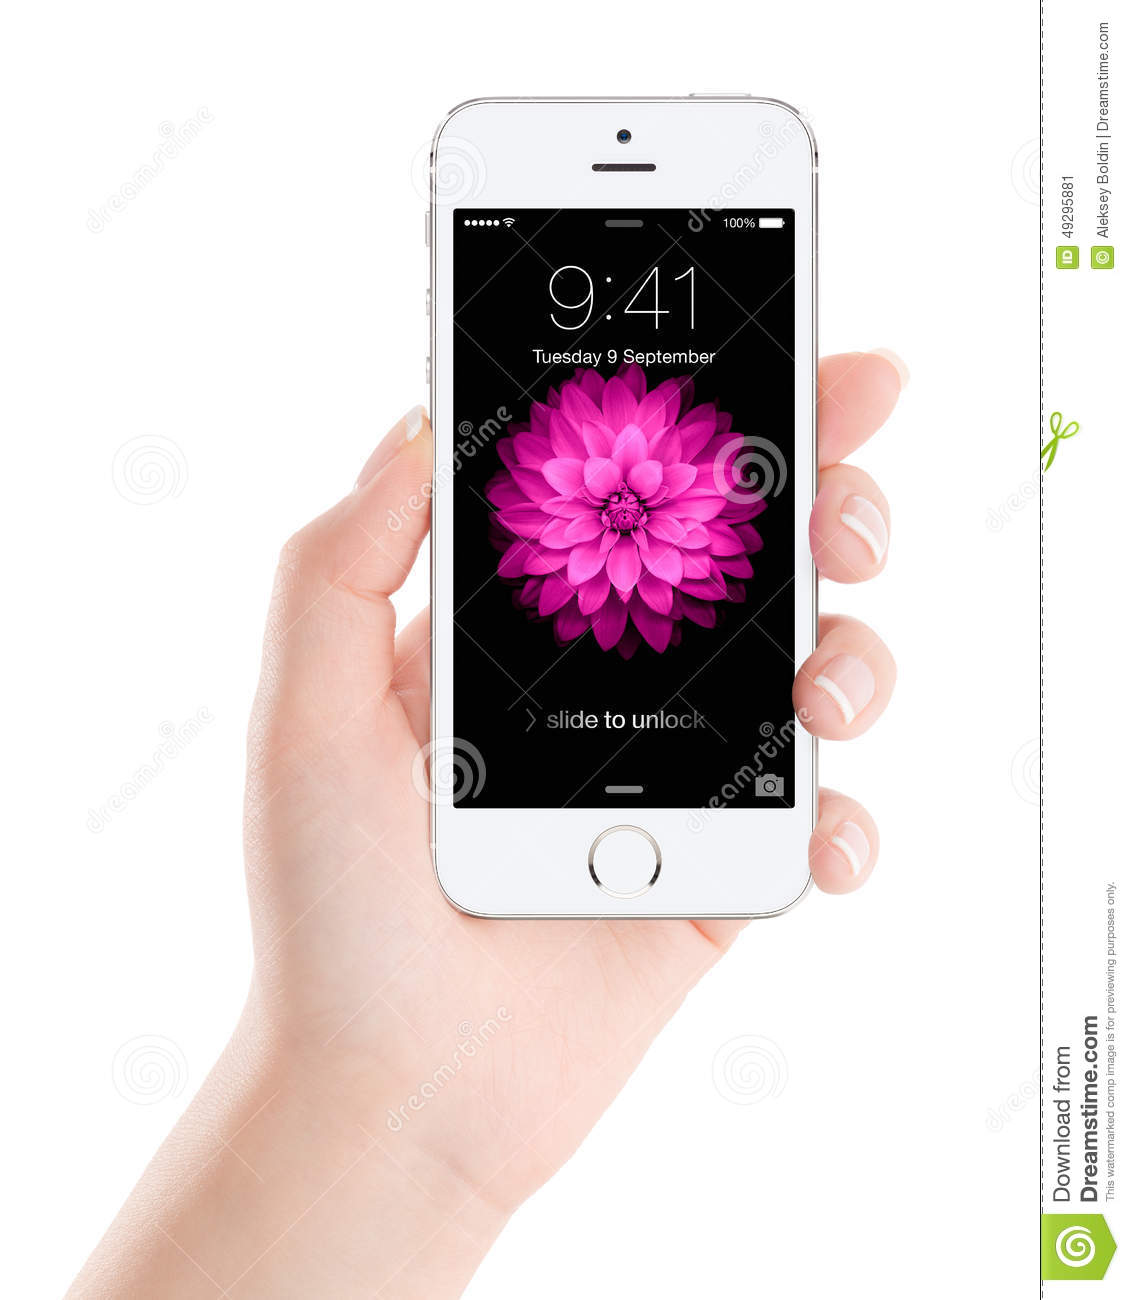 Apple Silver IPhone 5S With Lock Screen On The Display In Female